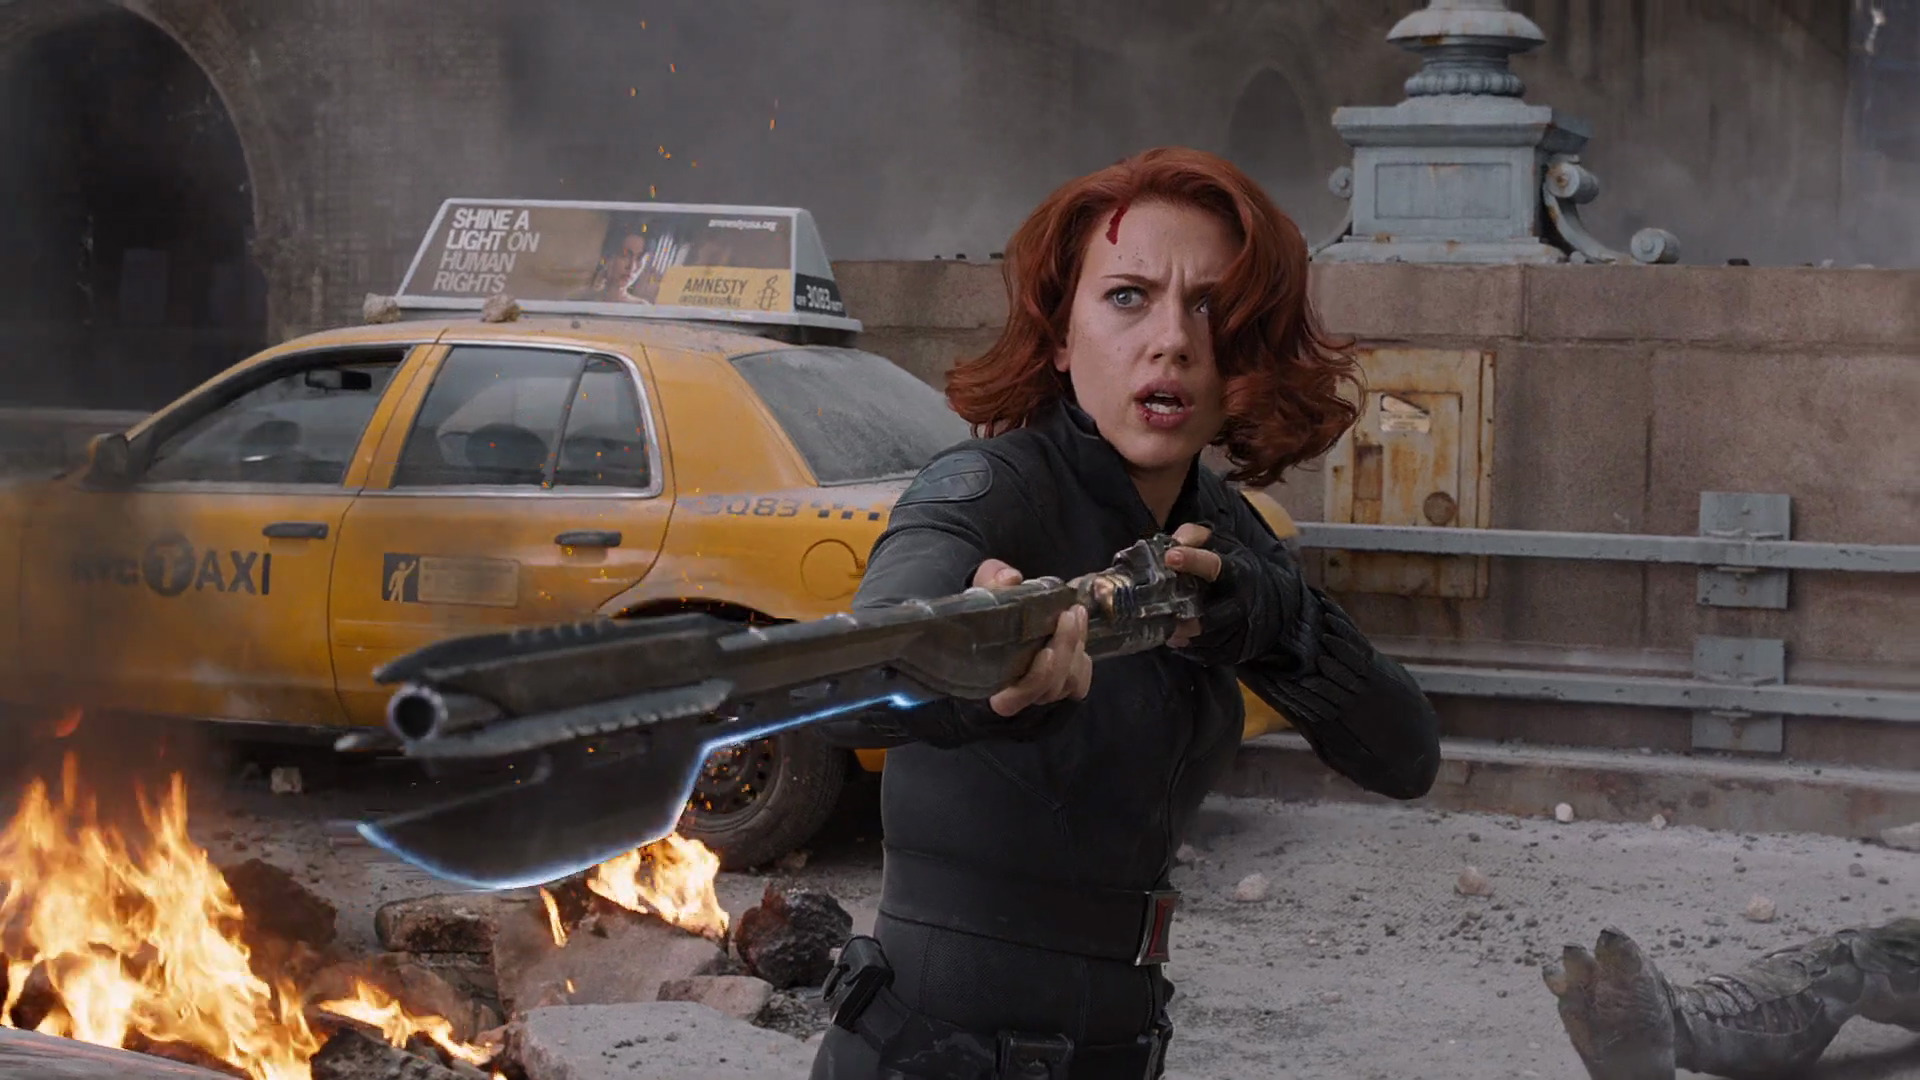 The Avengers Climax Black Widow The Avengers Photo